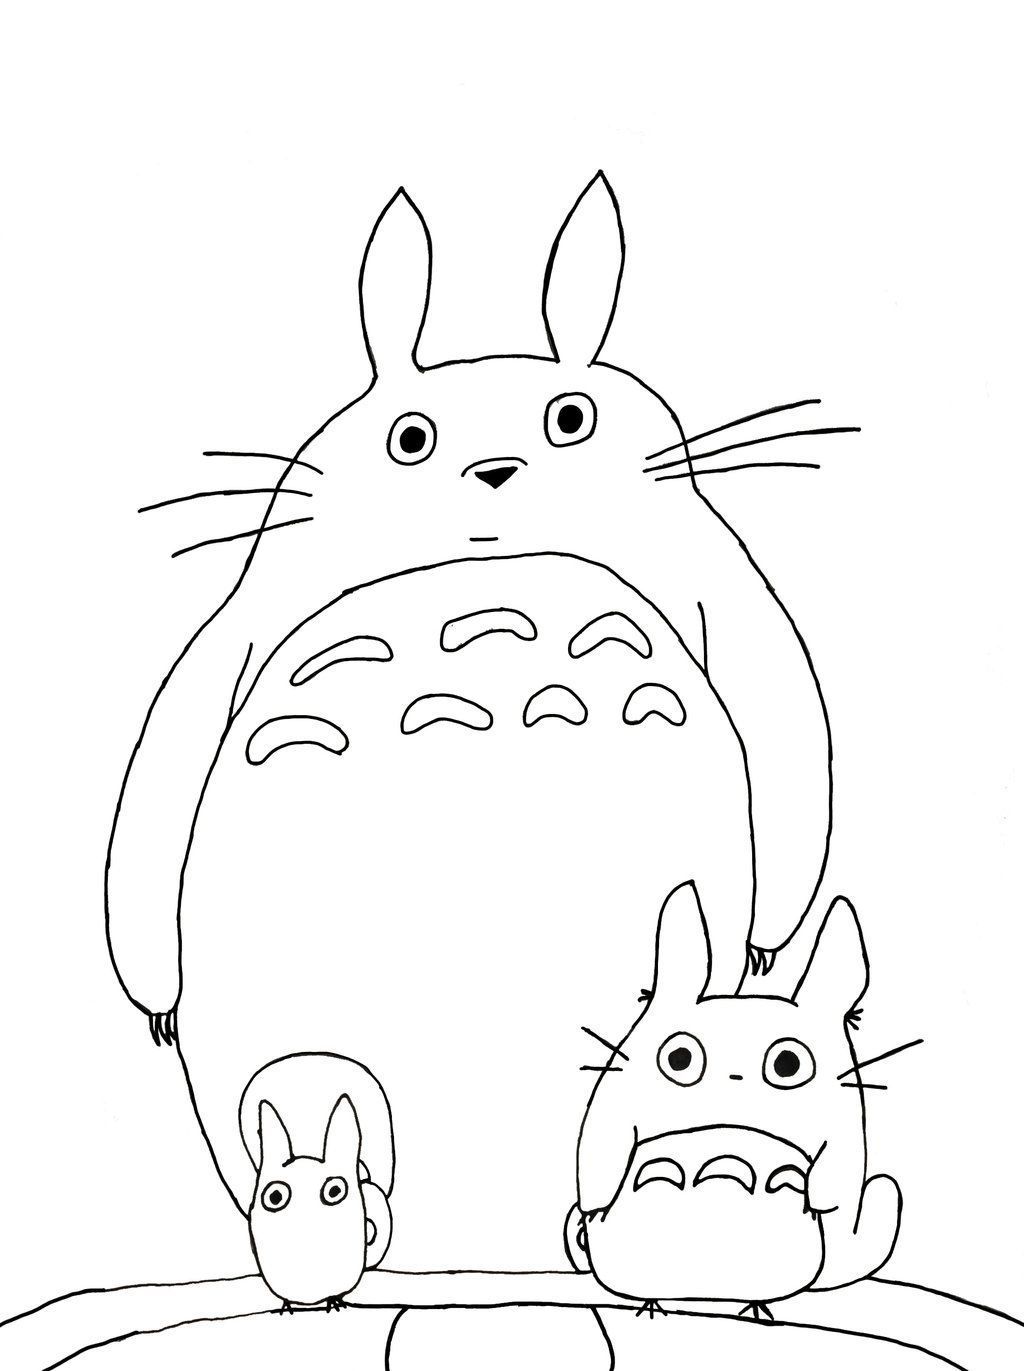 Totoro Coloring Pages Coloring Home